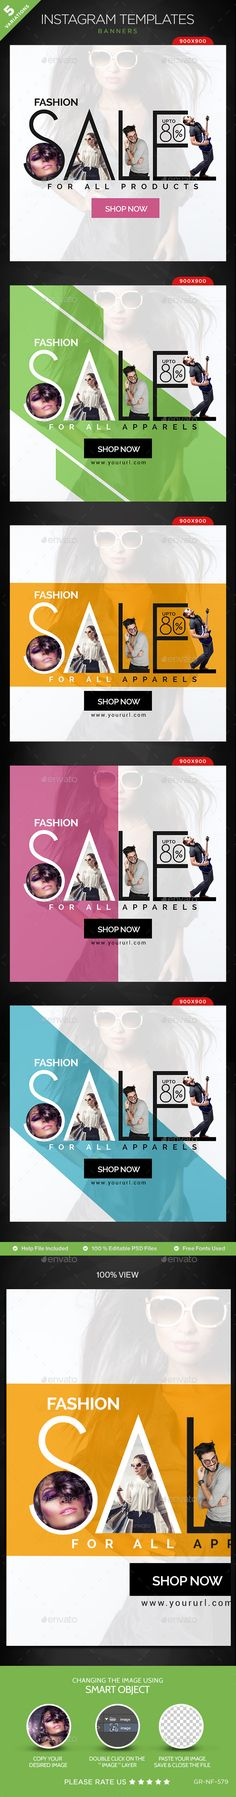 Sales Instagram Templates - 5 Designs - Banners & Ads Web Elements Web Design, Email Design, Flyer Design, Layout Design, Creative Design, Blog Banner, Sale Banner, Web Banner, Photoshop Design